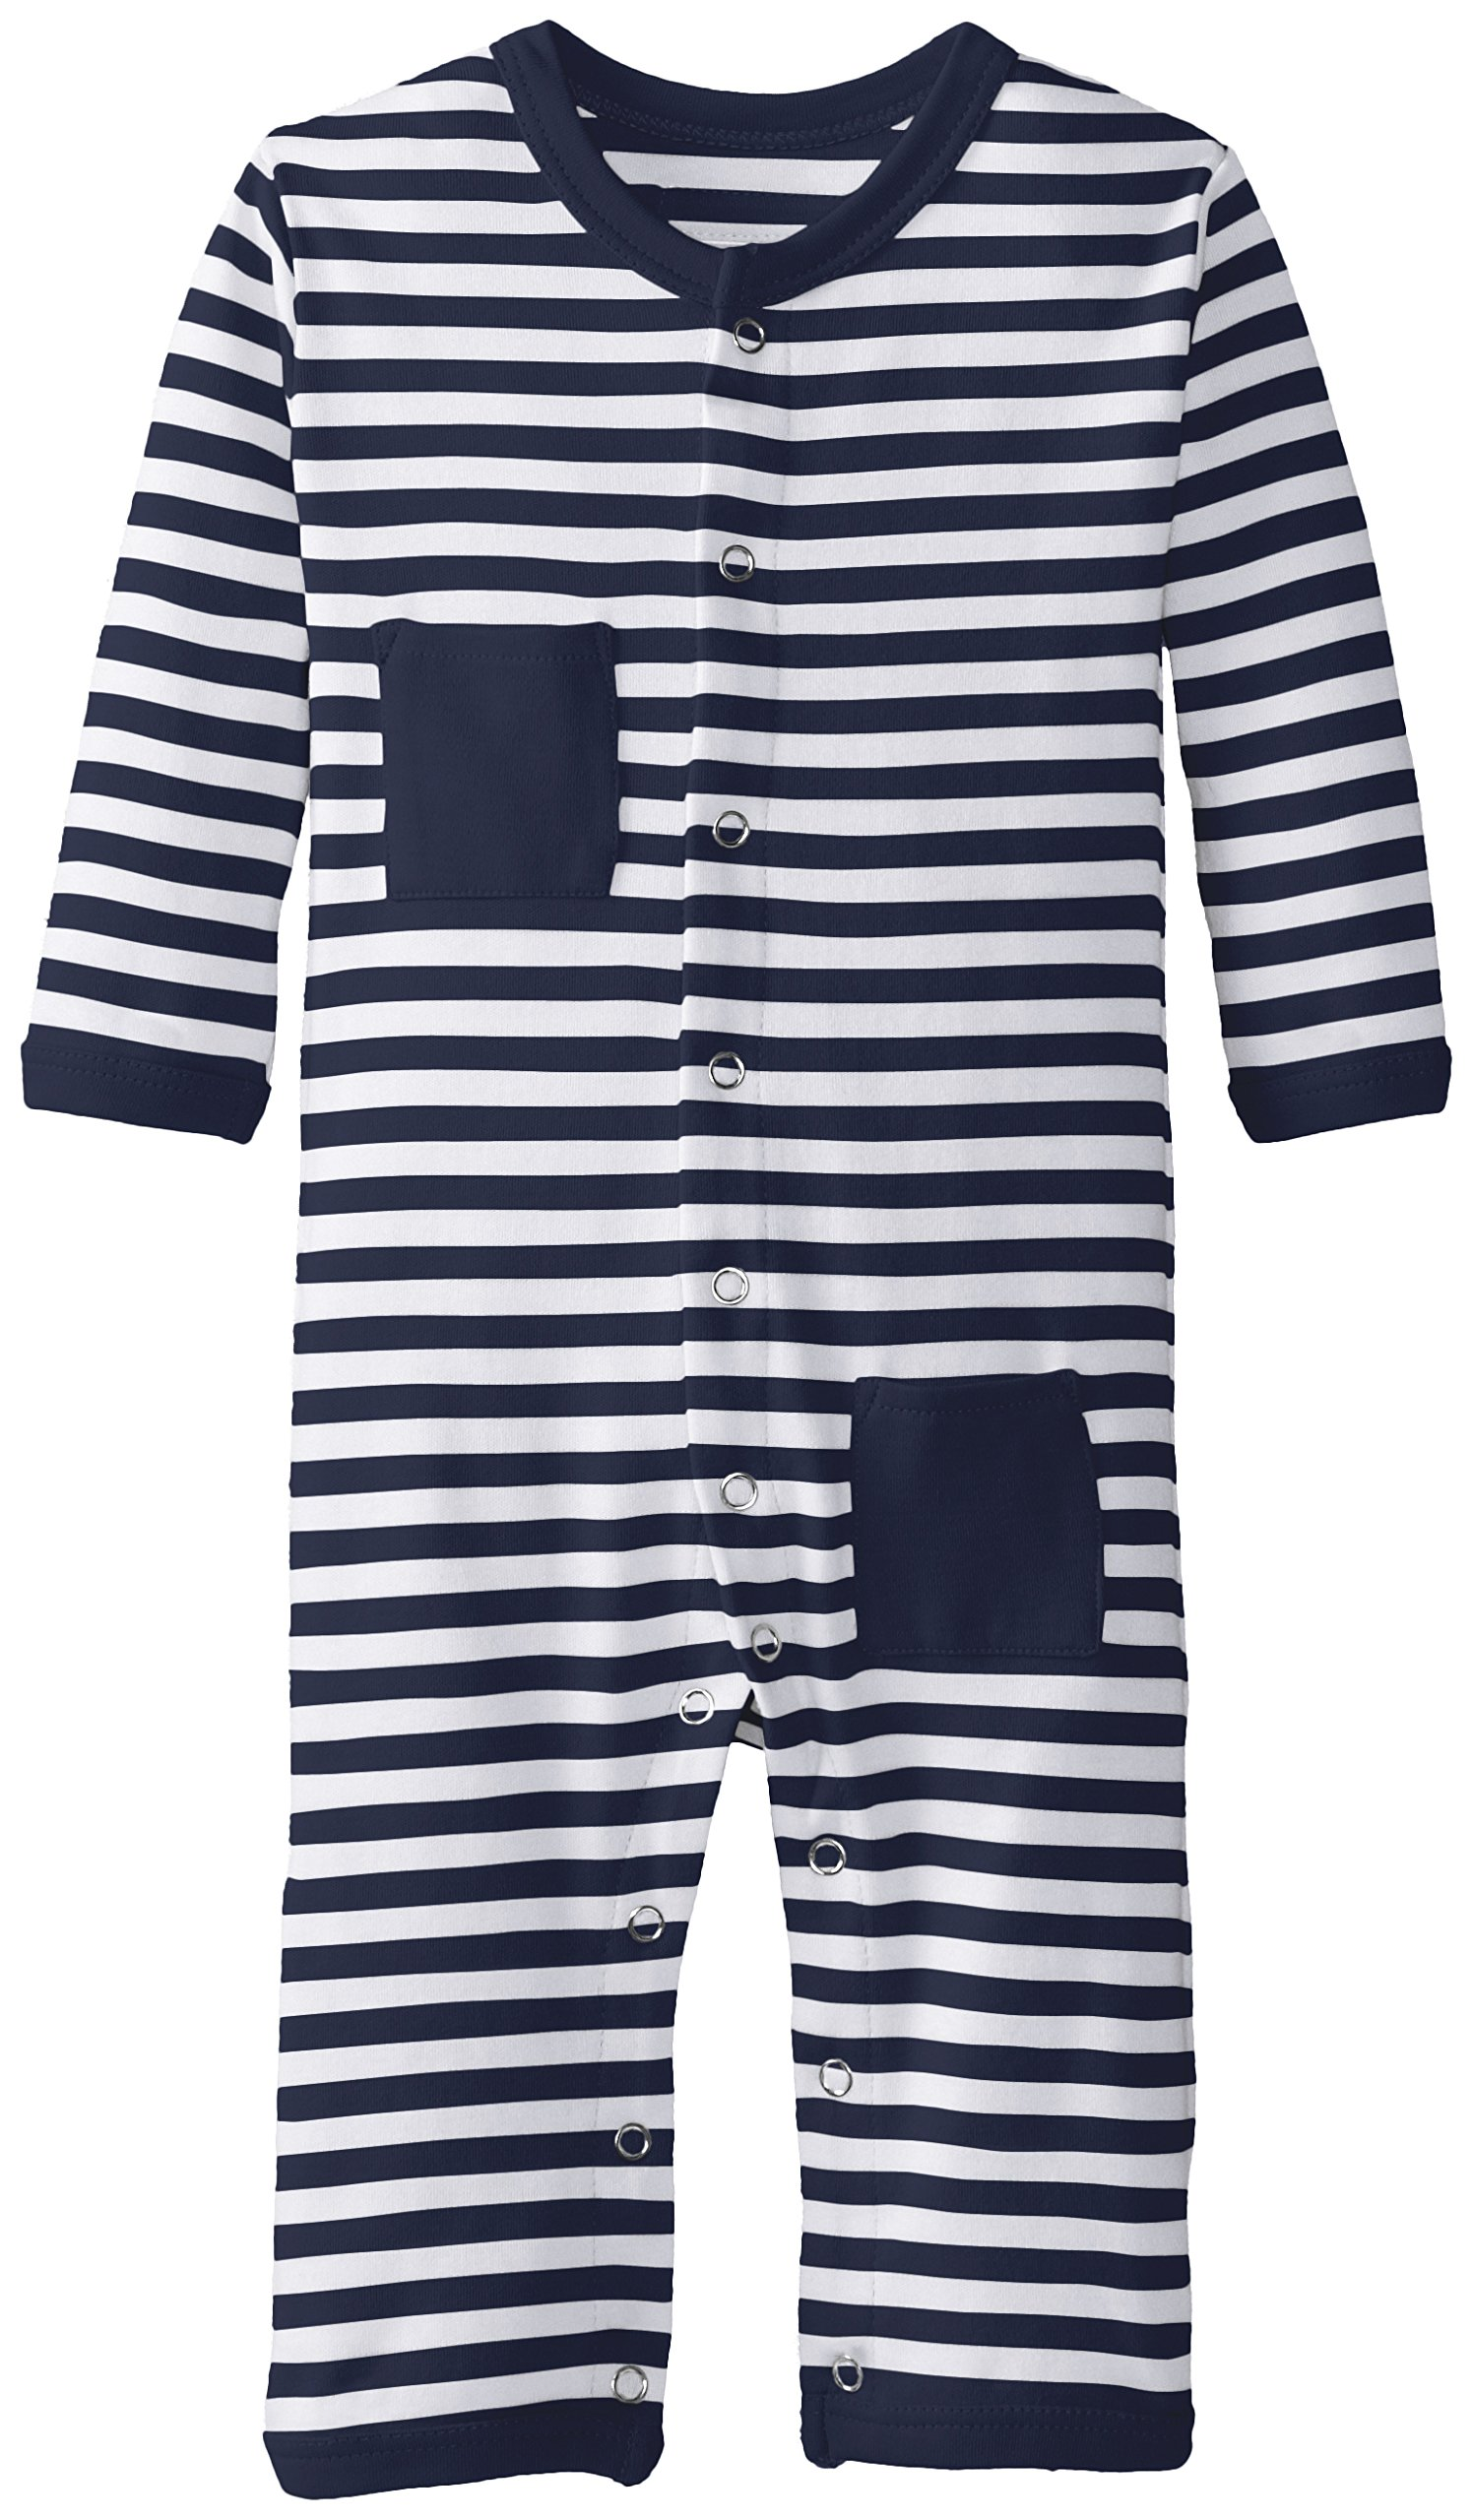 L'ovedbaby Unisex-Baby Newborn Organic Long Sleeve Overall, Navy/White, 6/9 Months